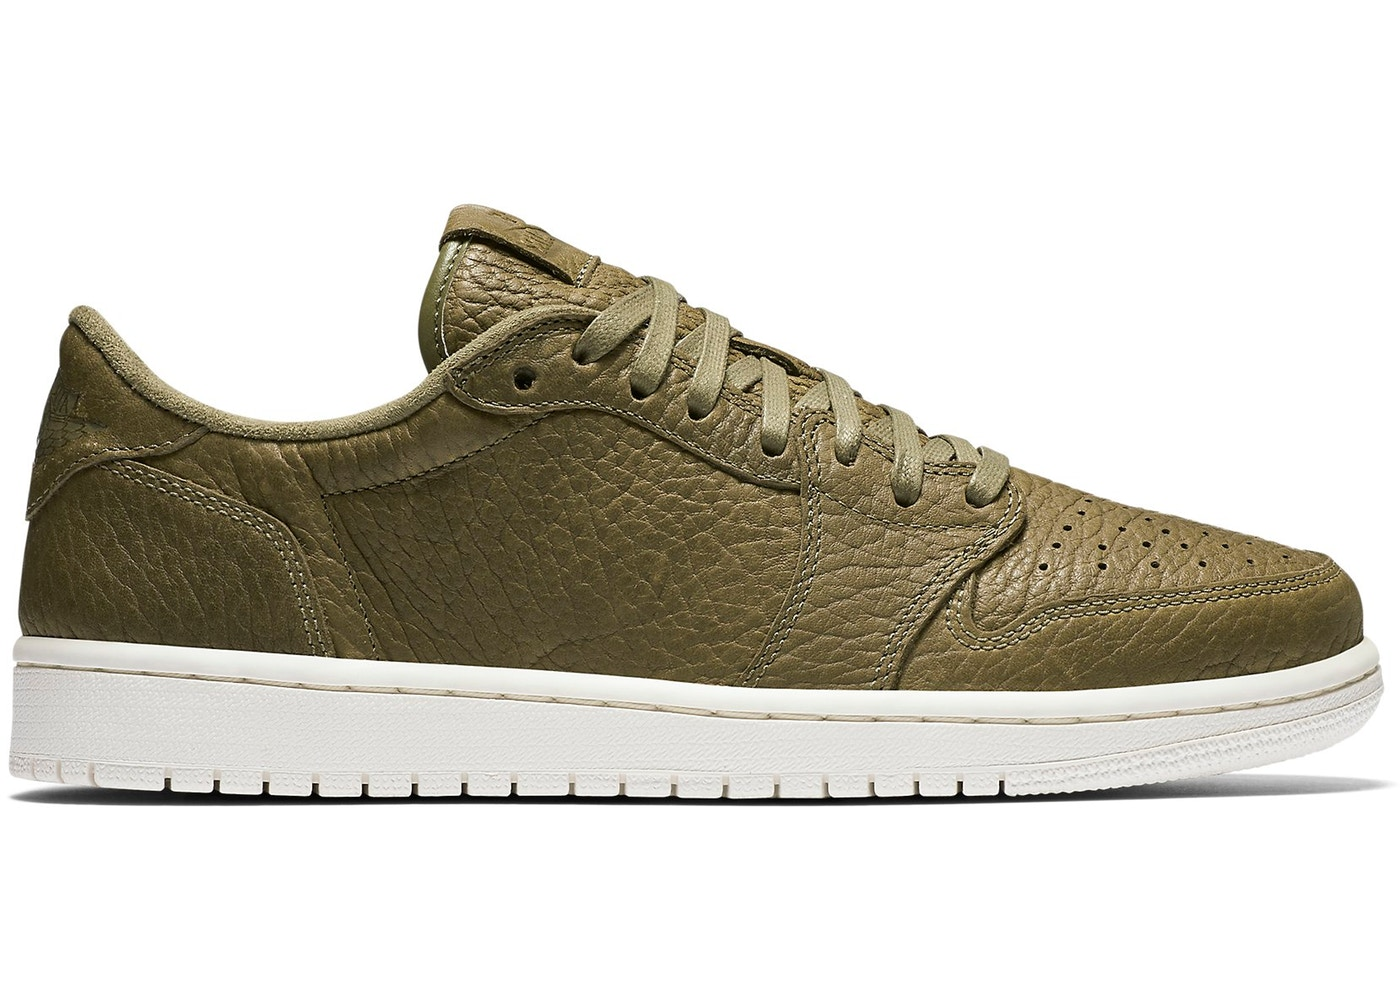 Jordan 1 Retro Low NS Trooper Olive